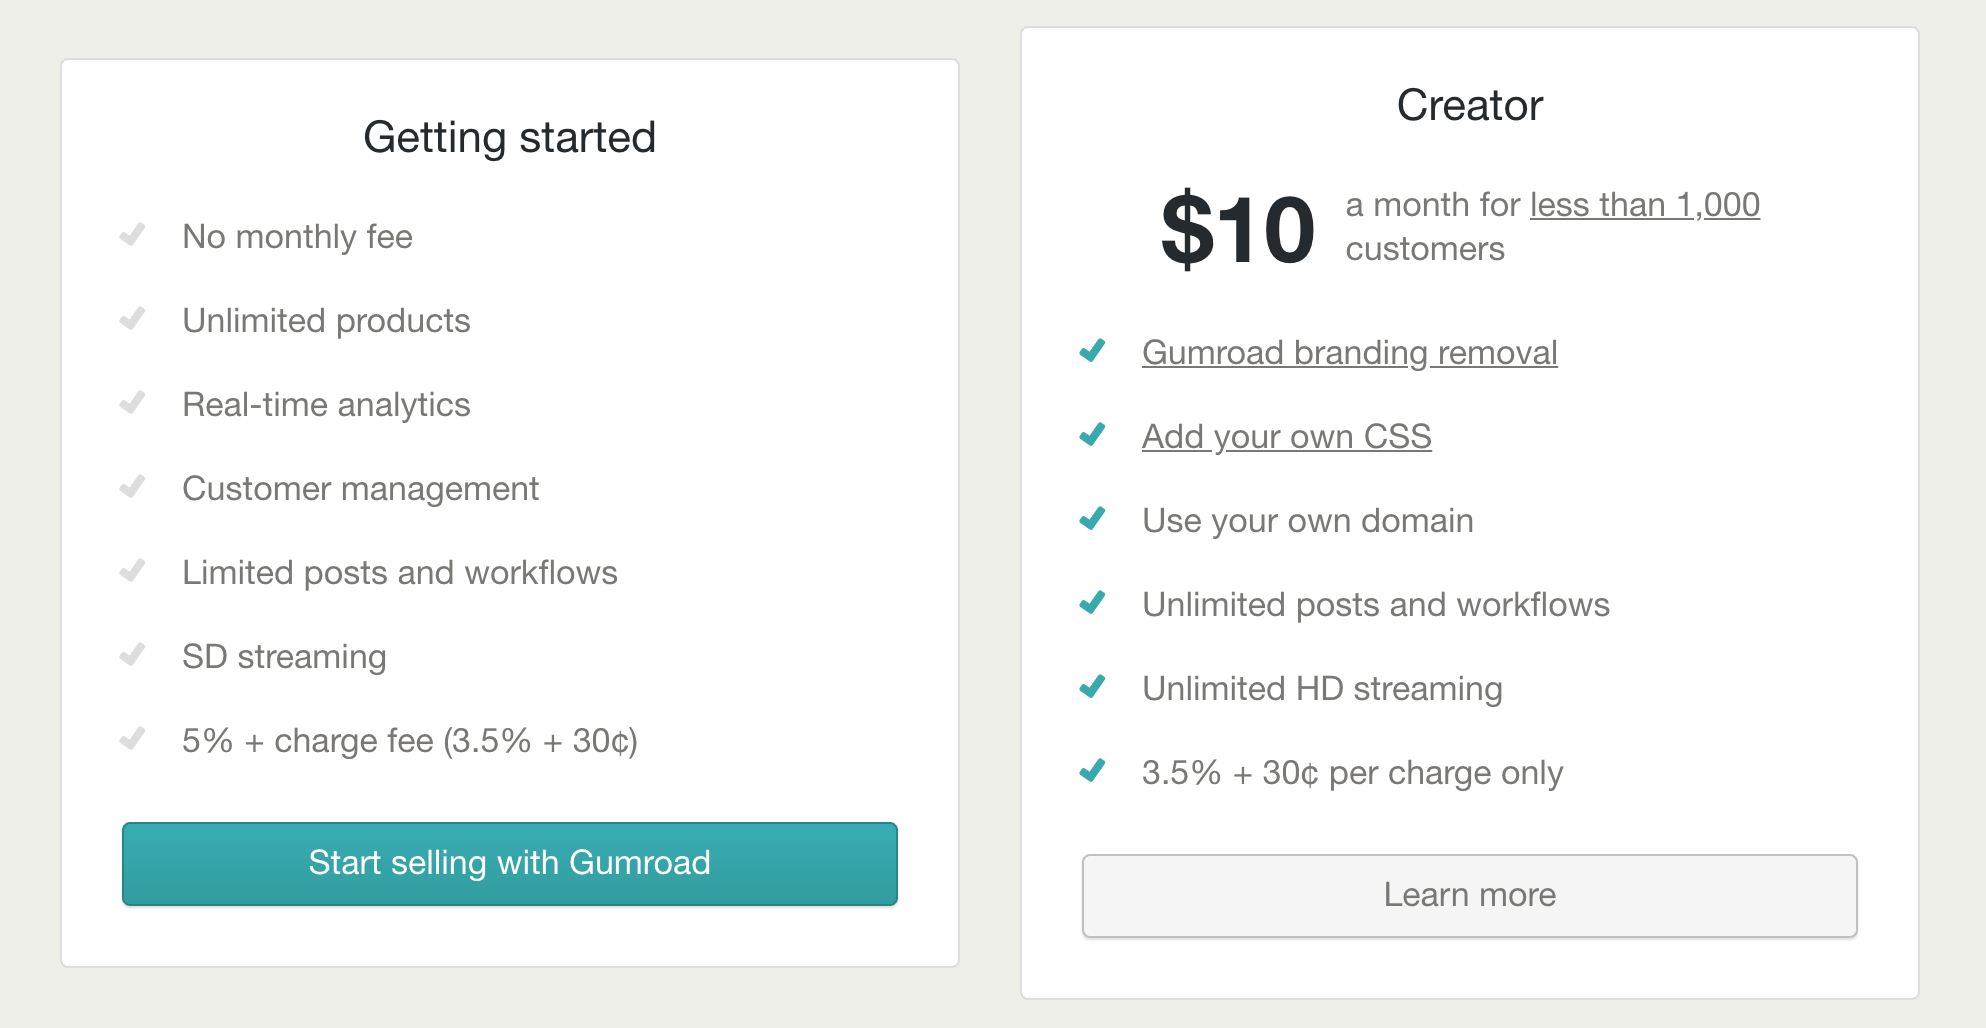 Gumroad Pricing